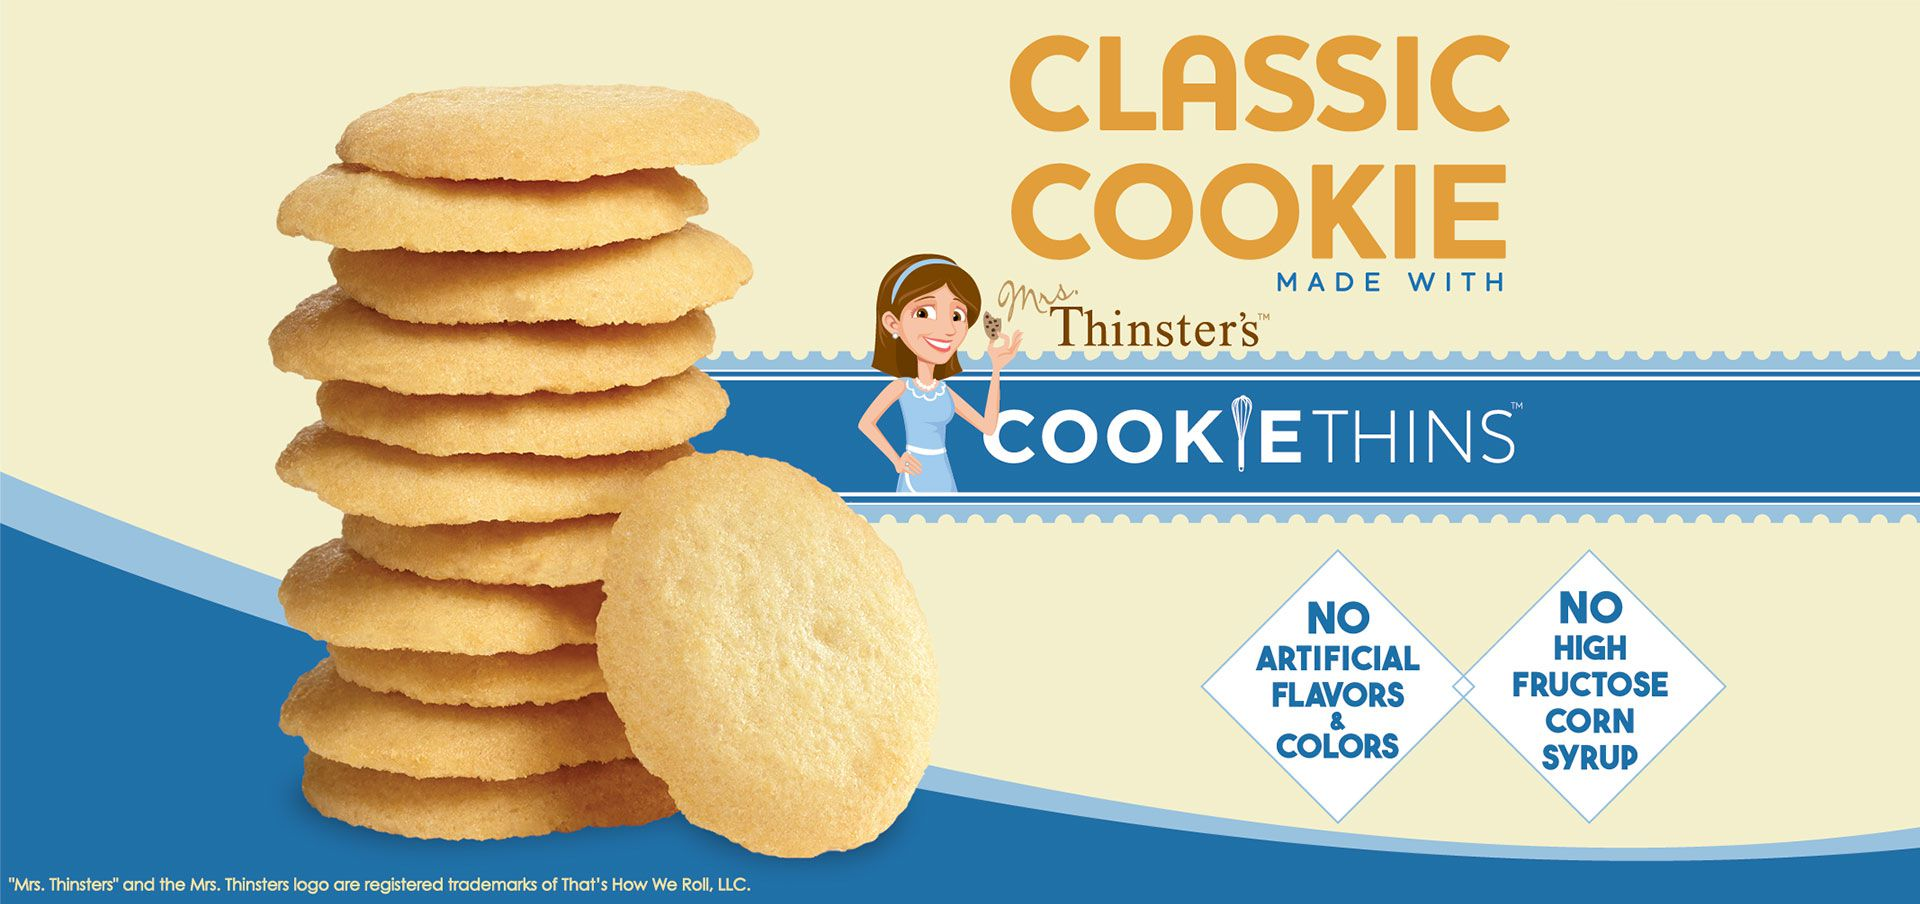 classic cookie made with mrs. thinster's cookie thins label image